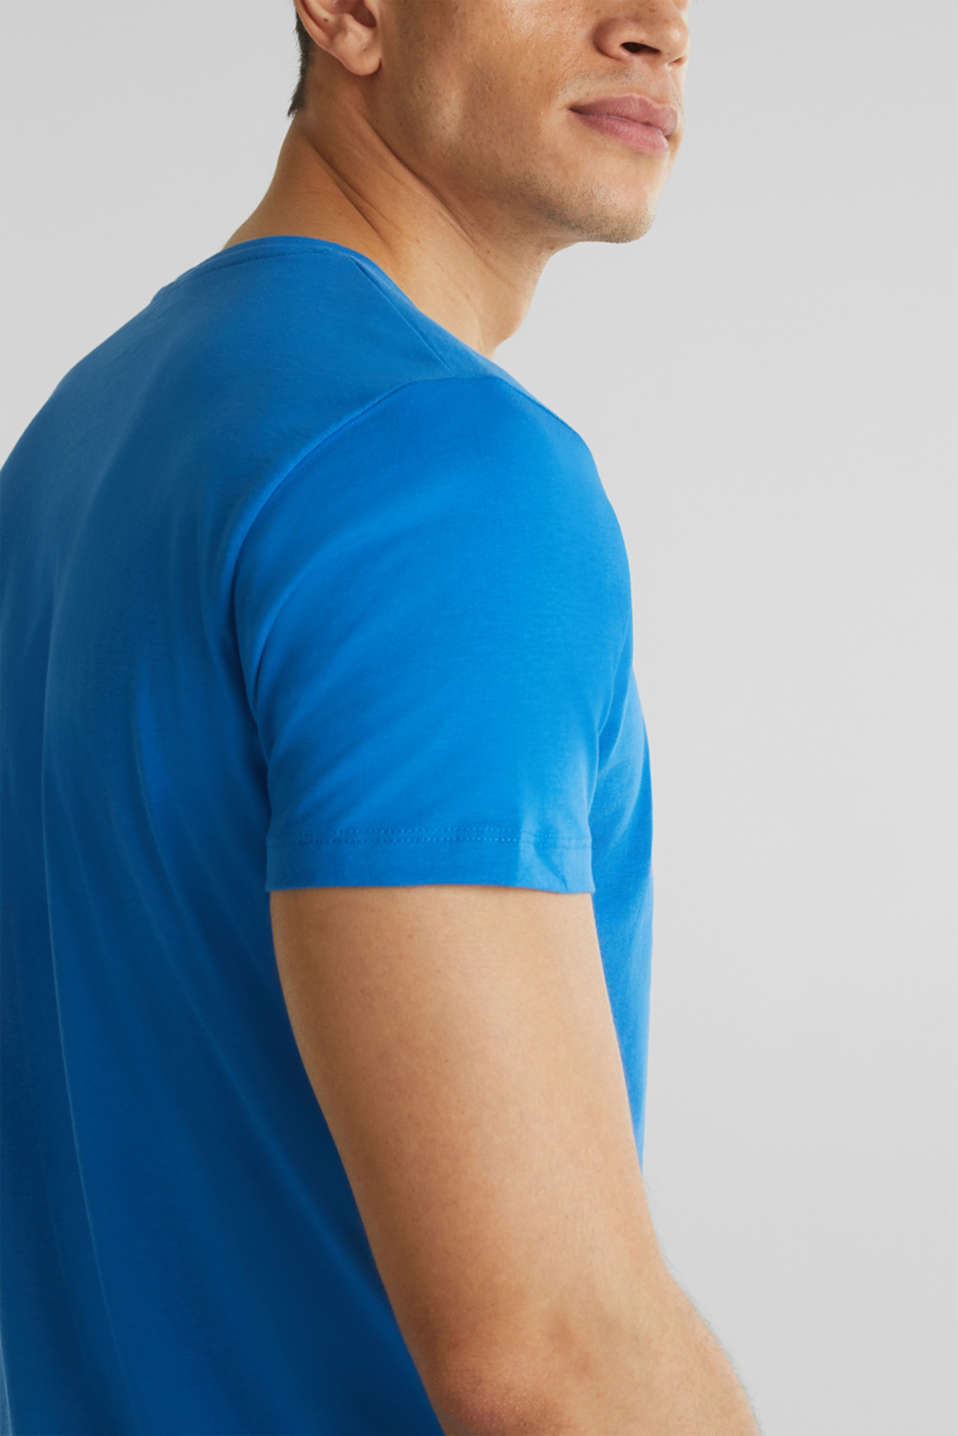 Jersey T-shirt in 100% cotton, BLUE, detail image number 1